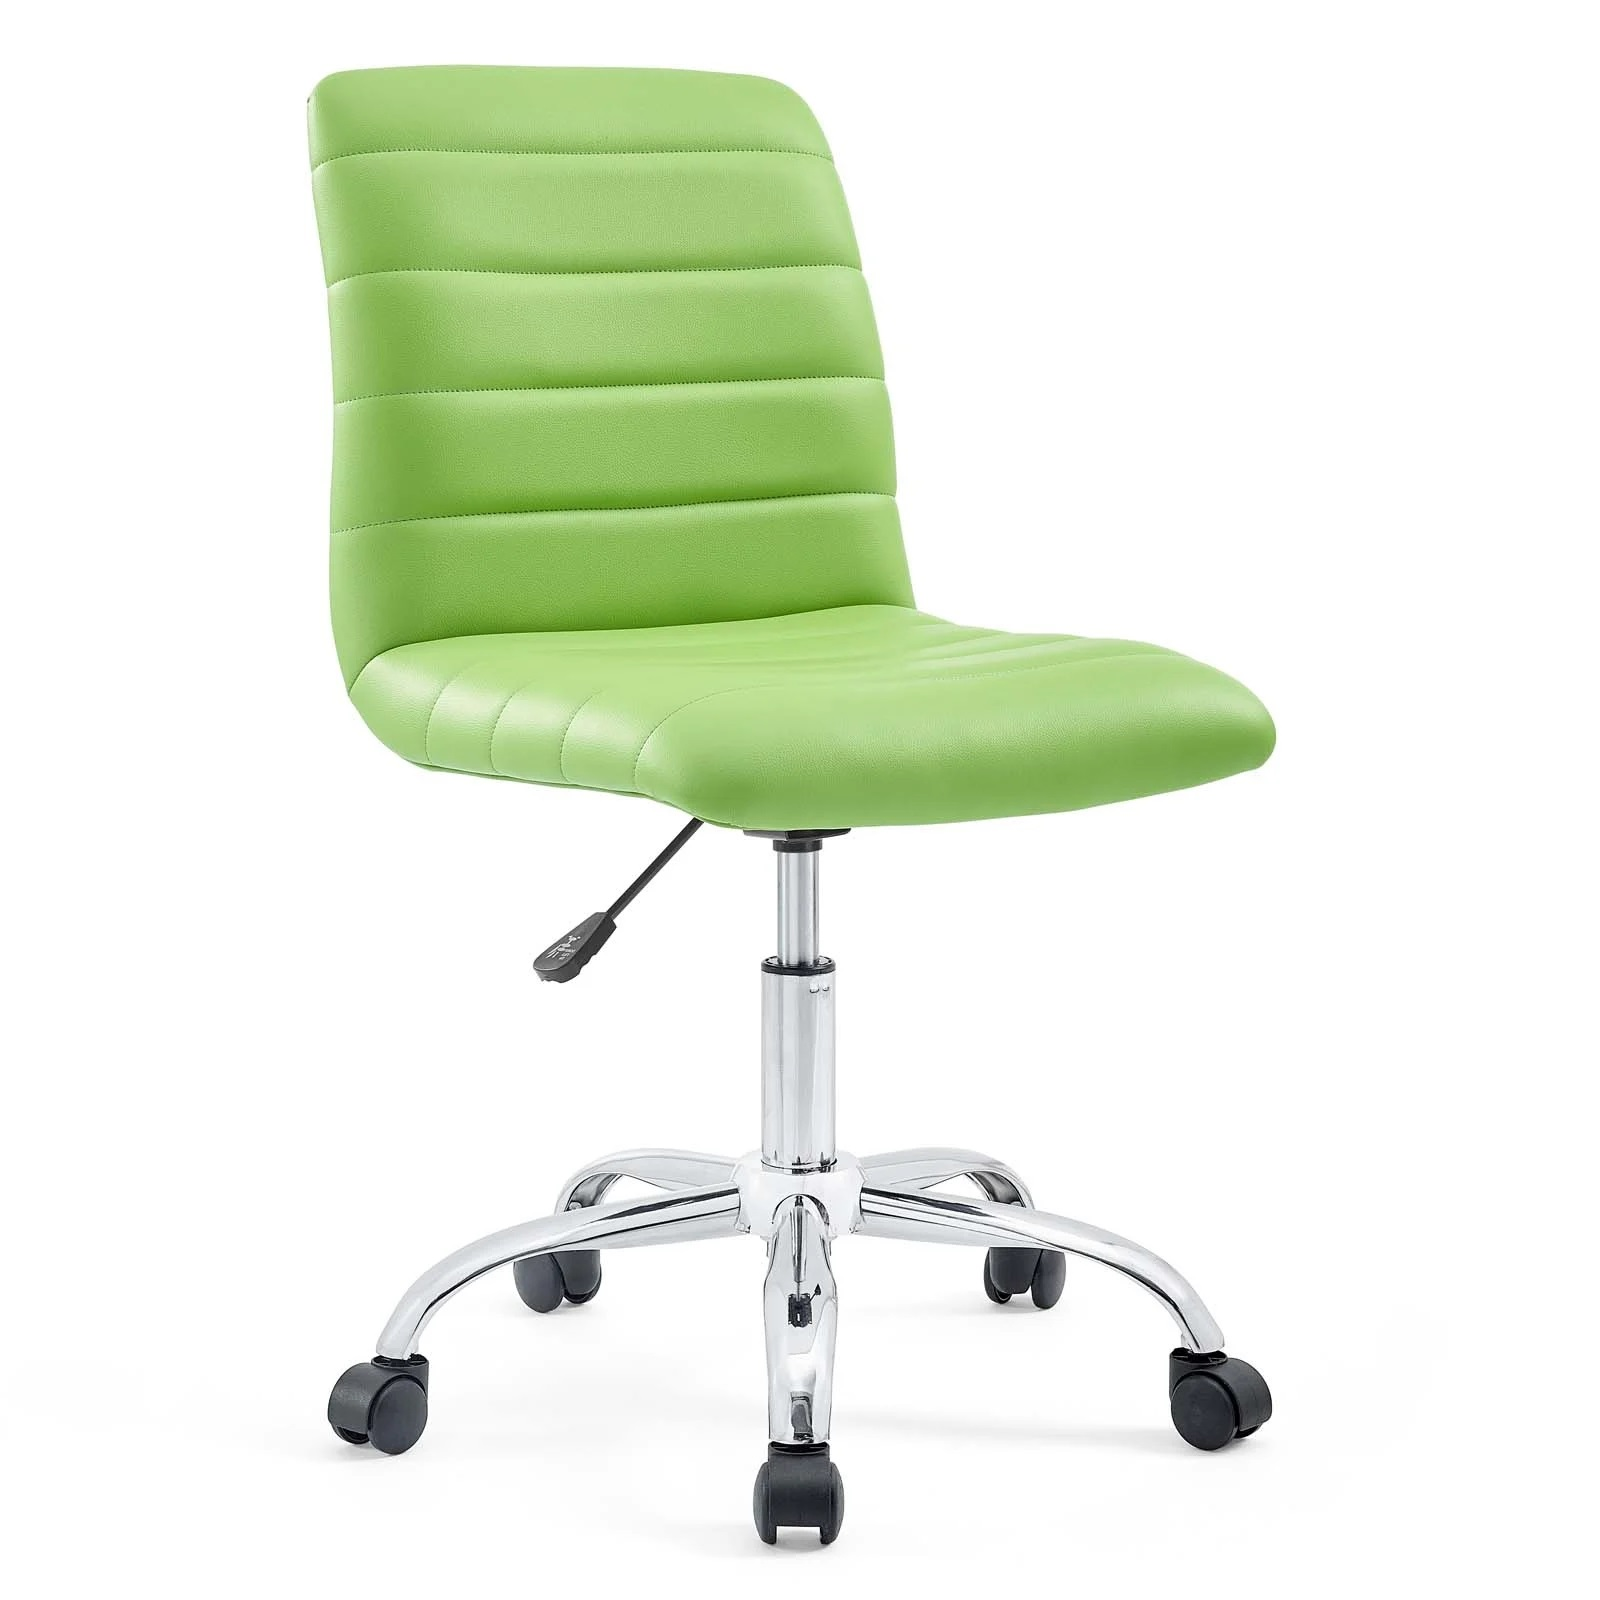 Armless Mid Back Vinyl Office Chair in Bright Green